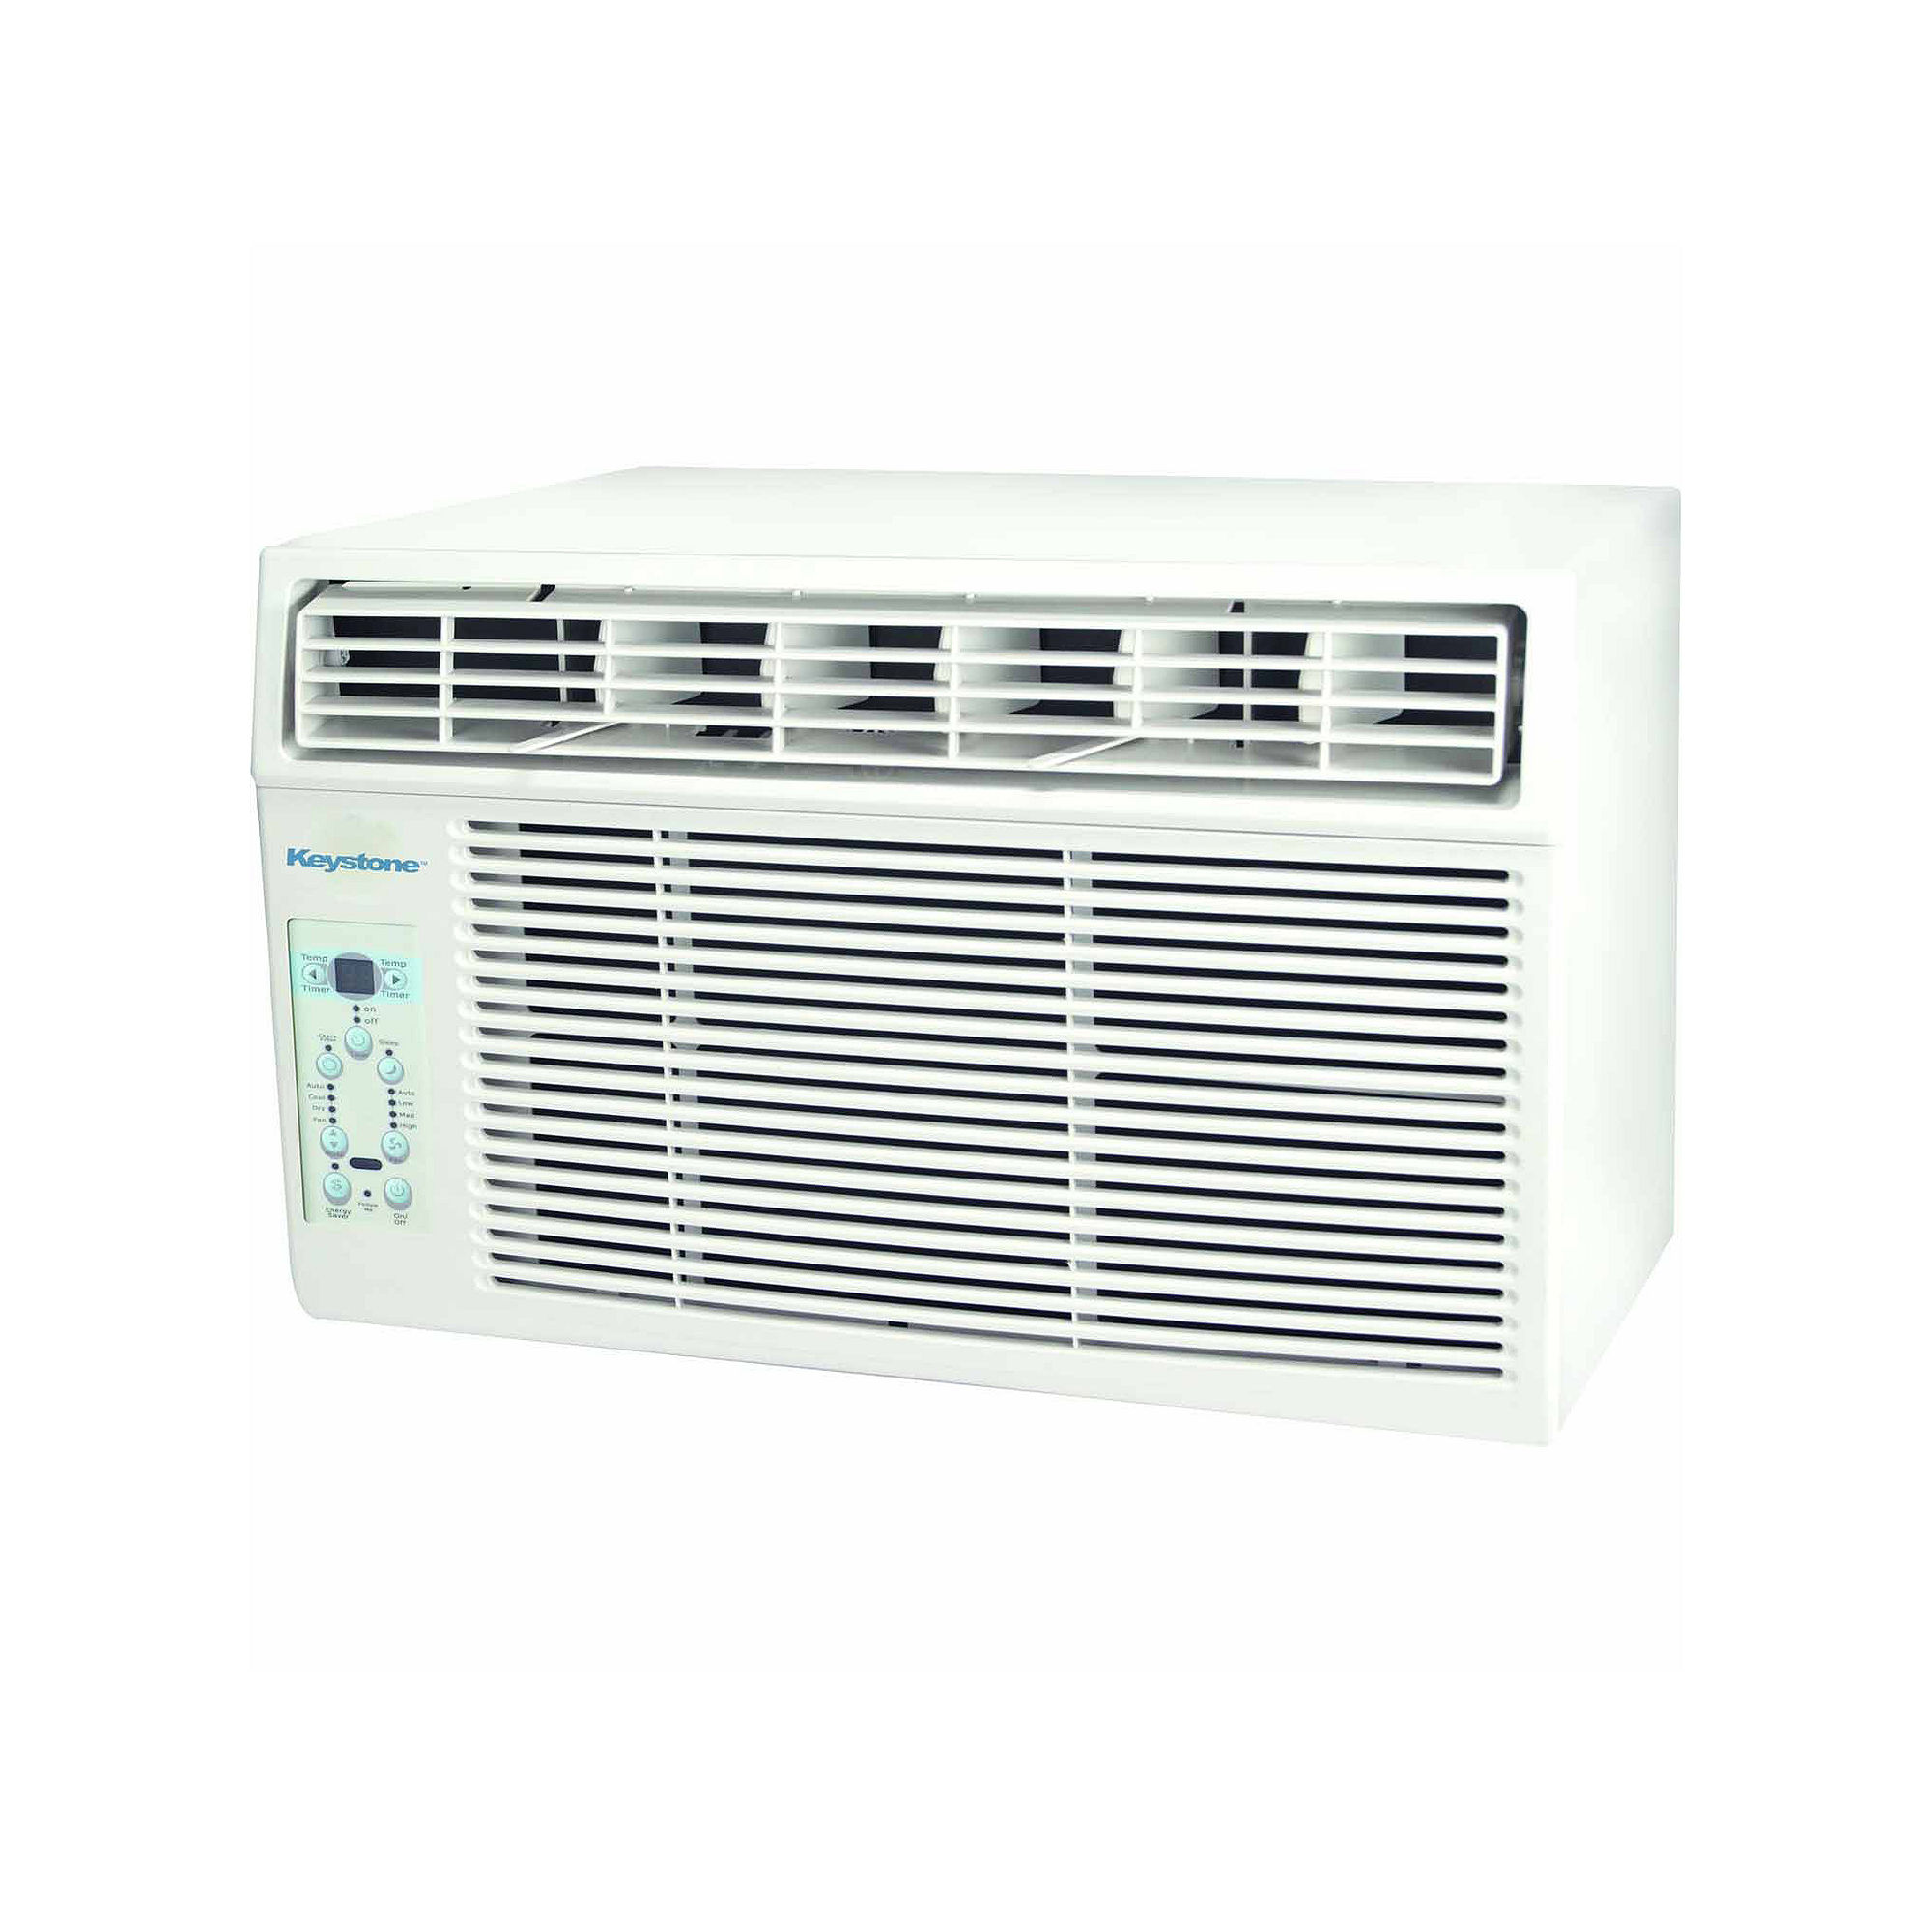 "Keystone Energy Star 5000 BTU Window-Mounted Air Conditioner with ""Follow Me"" LCD Remote Control"""